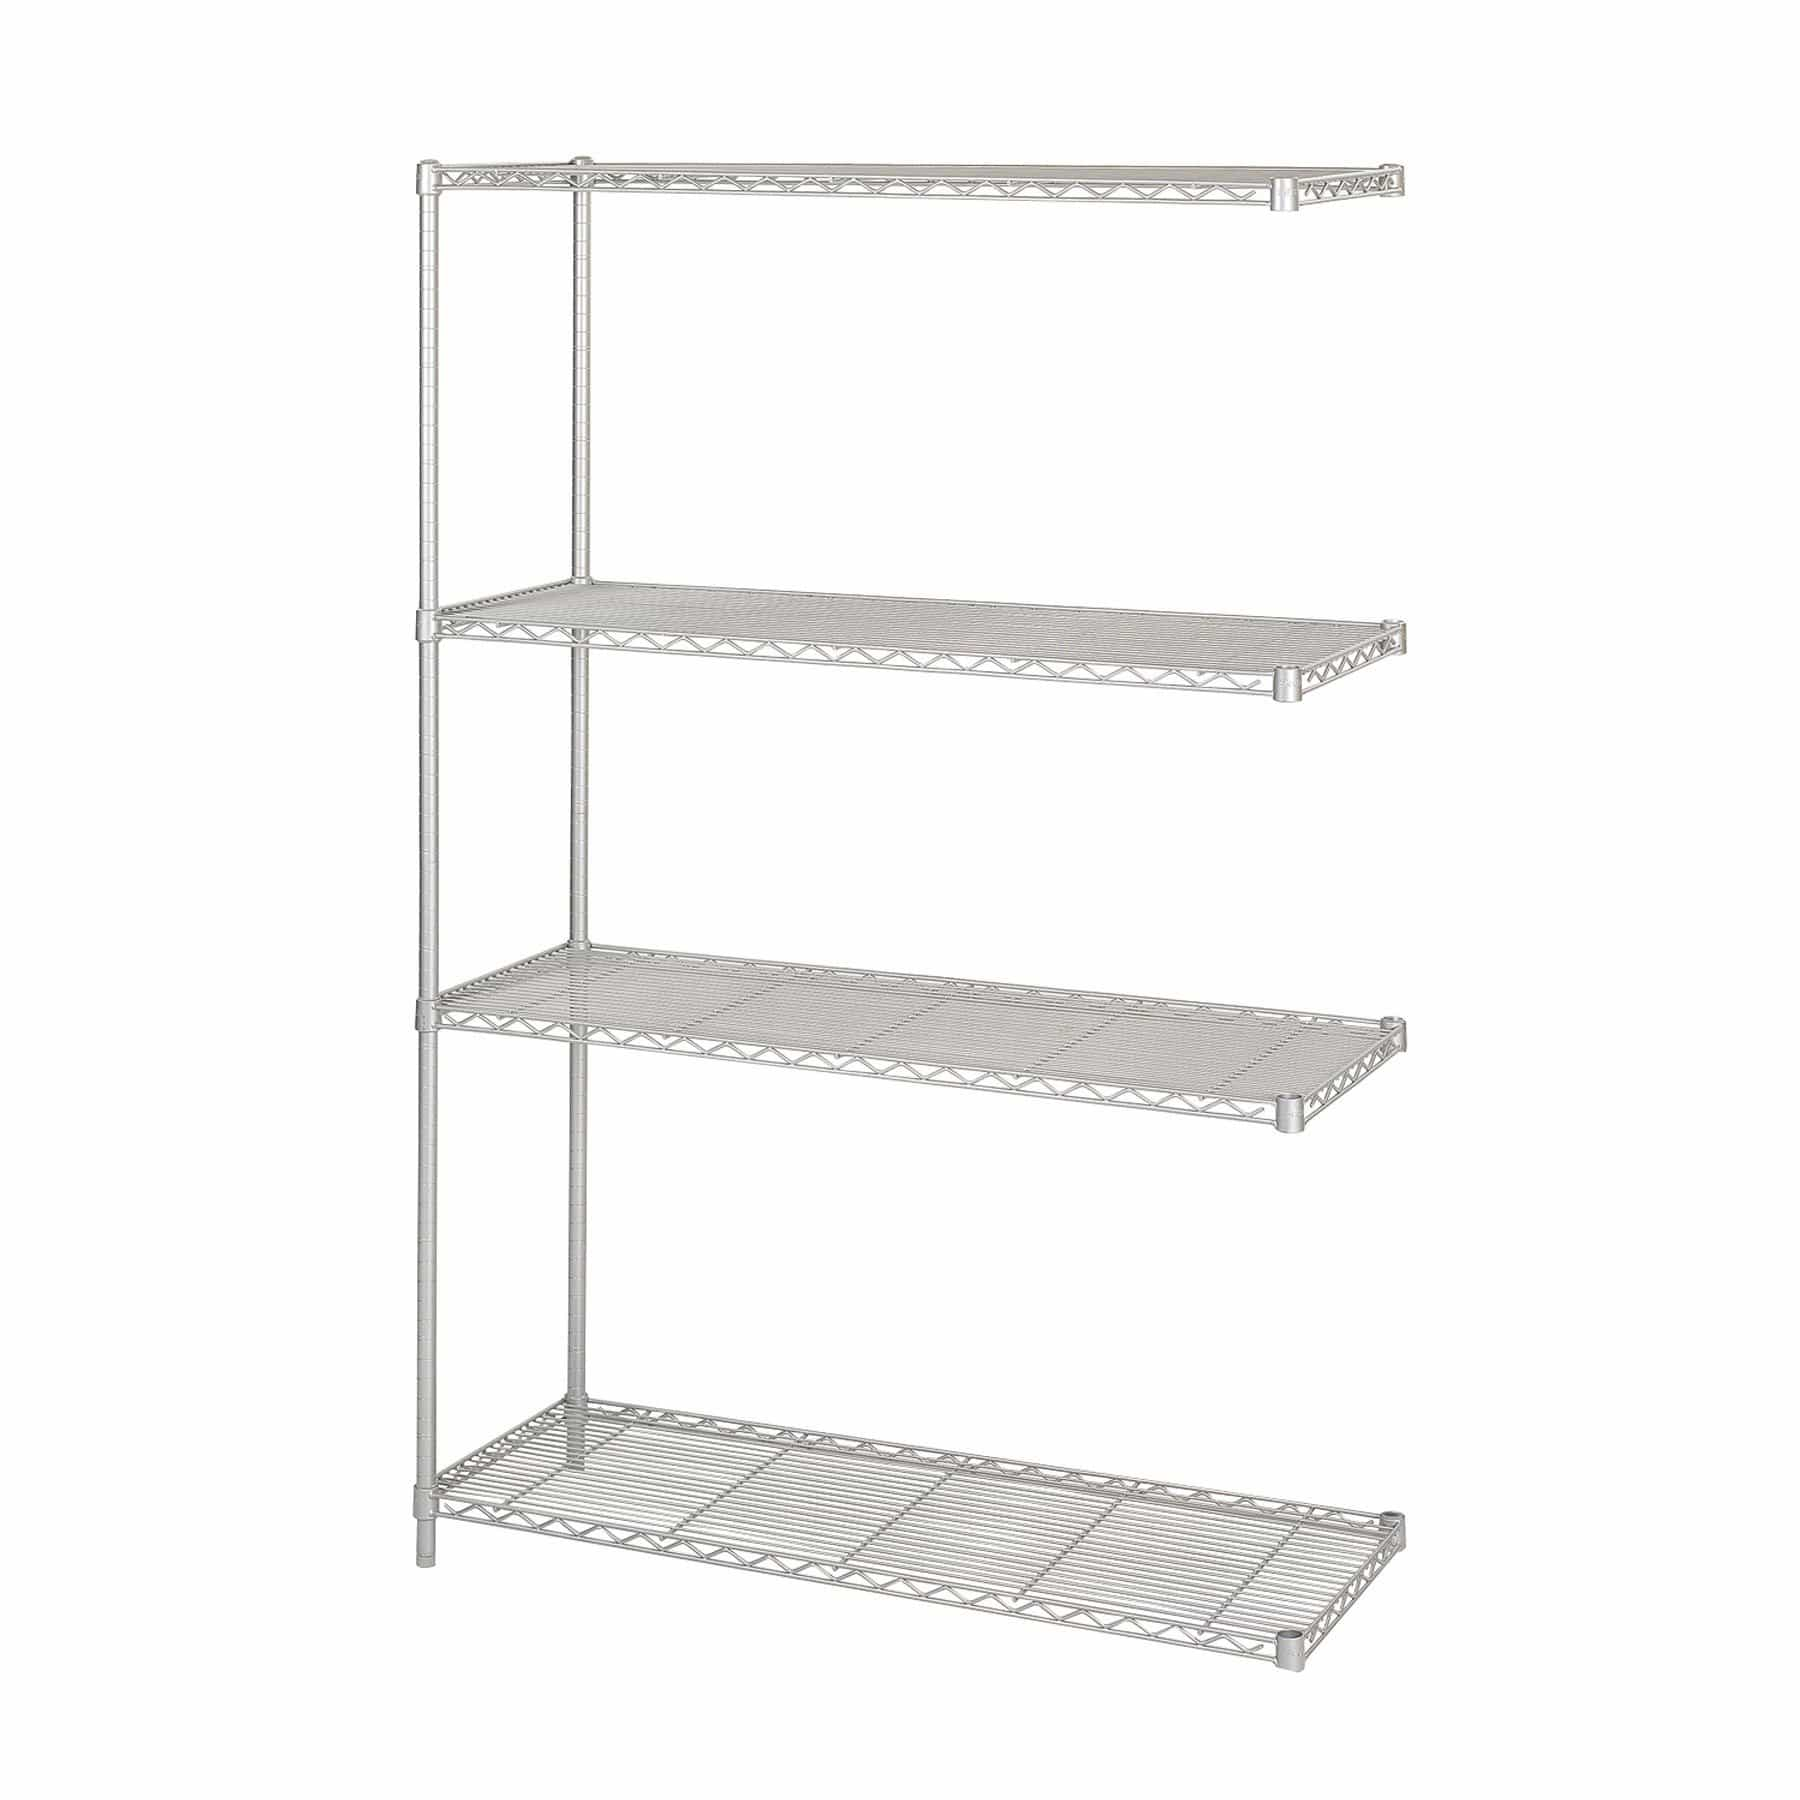 bedinhome - Safco Industrial 48 In x 18 In Add-On Unit welded wire Shelving storage shelf - Safco - Wire Shelving